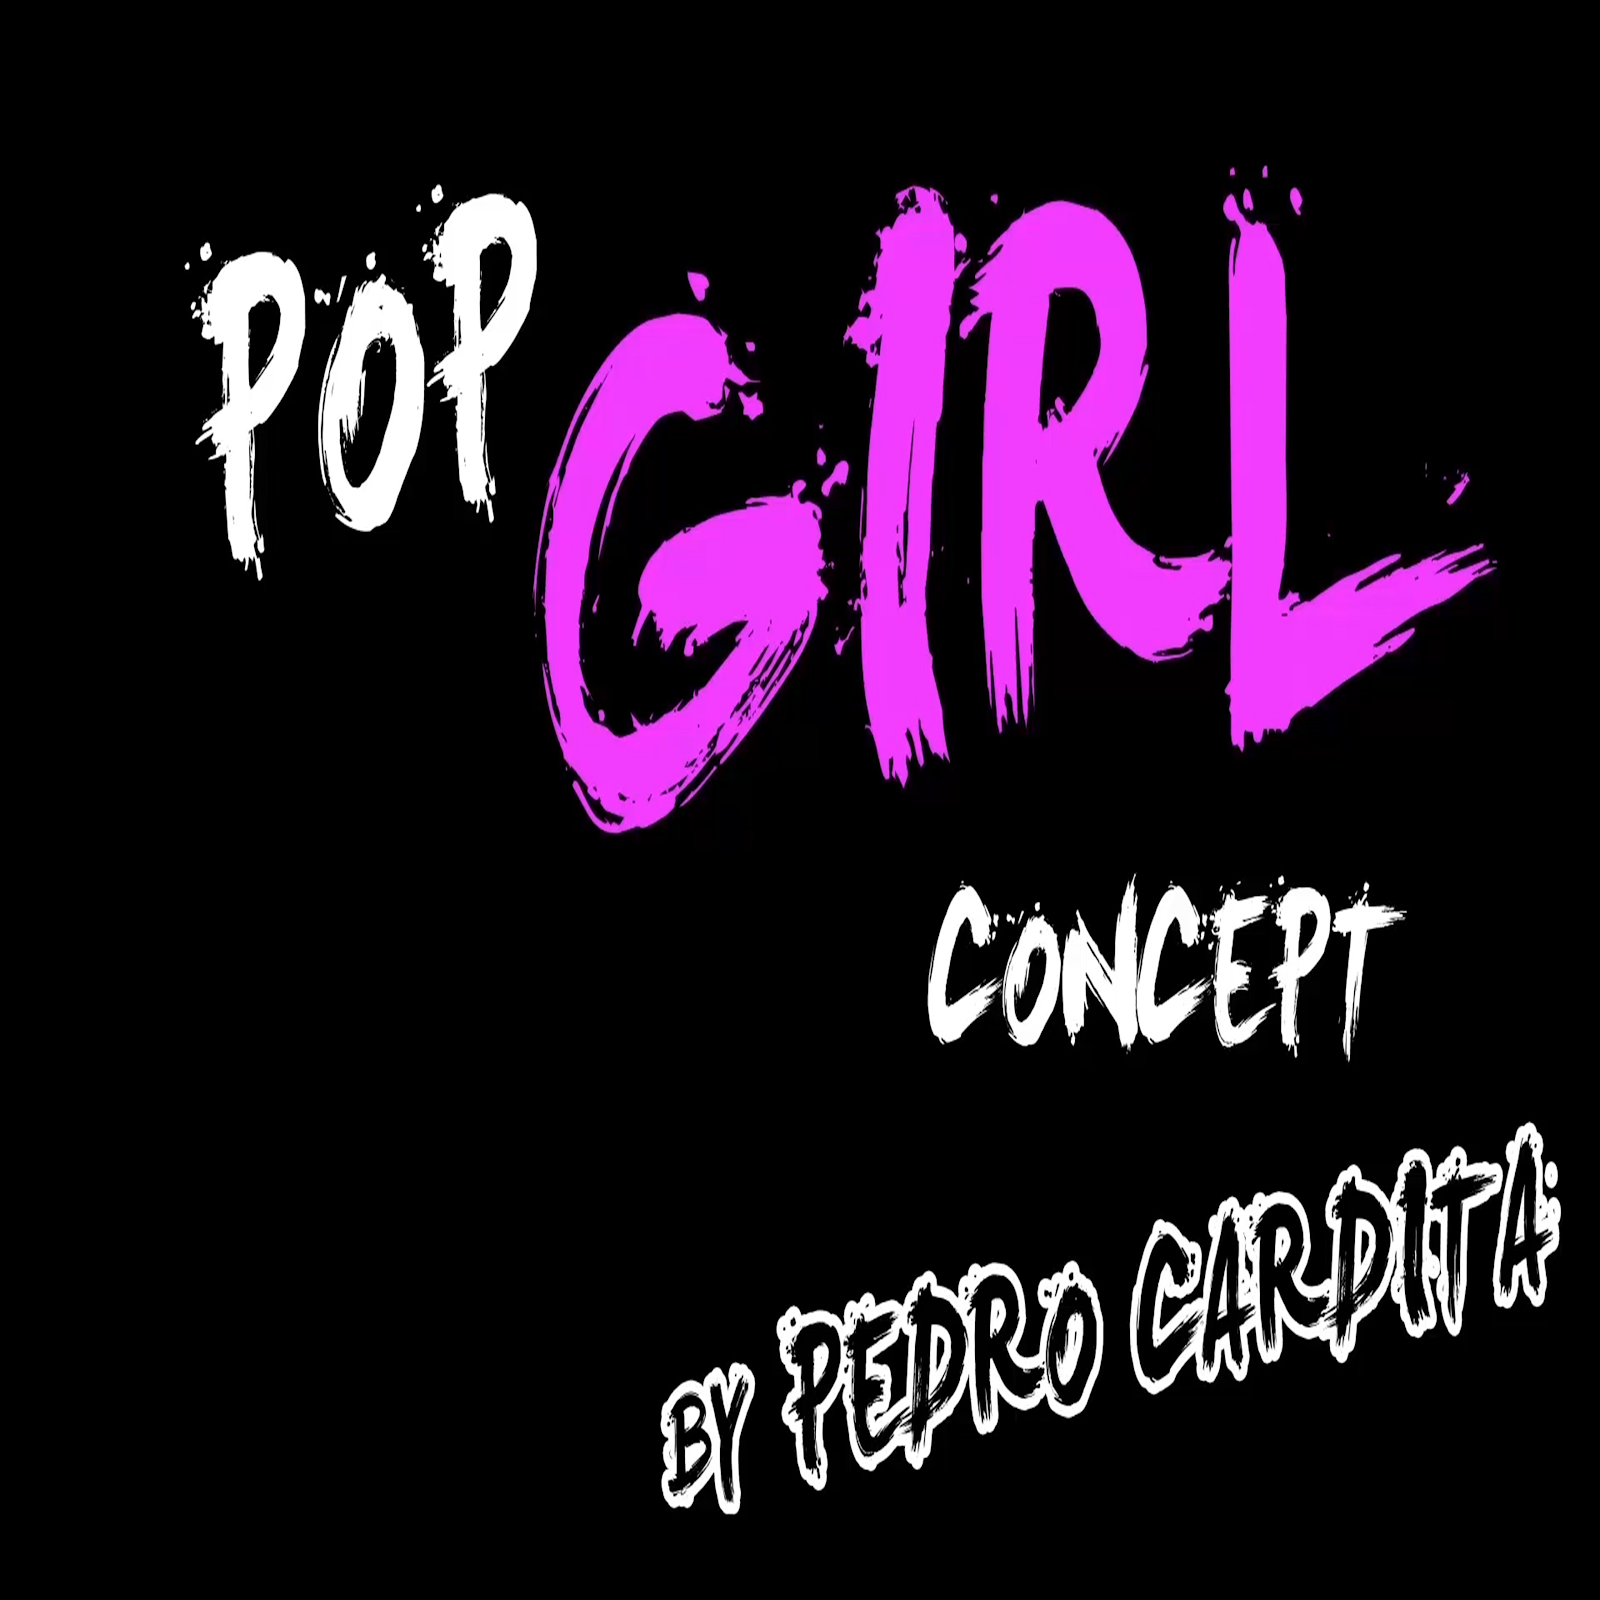 Pop Girl Concept by Pedro Cardita